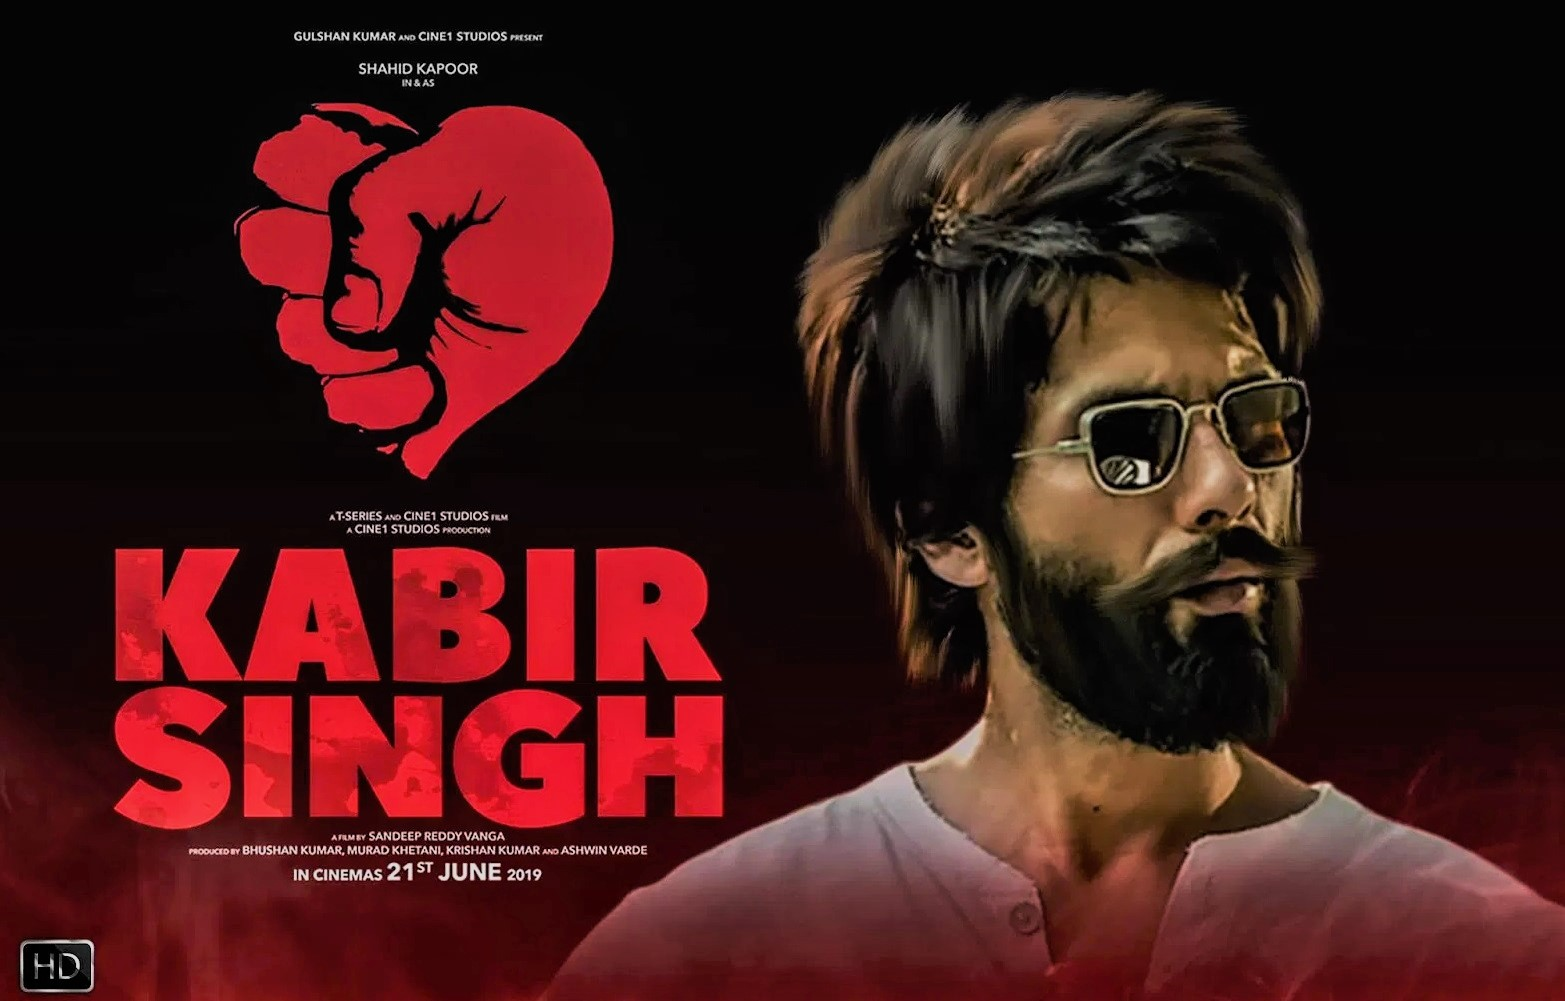 Kabir Singh Full Movie Download, Leaked on Pagalworld in HD Quality